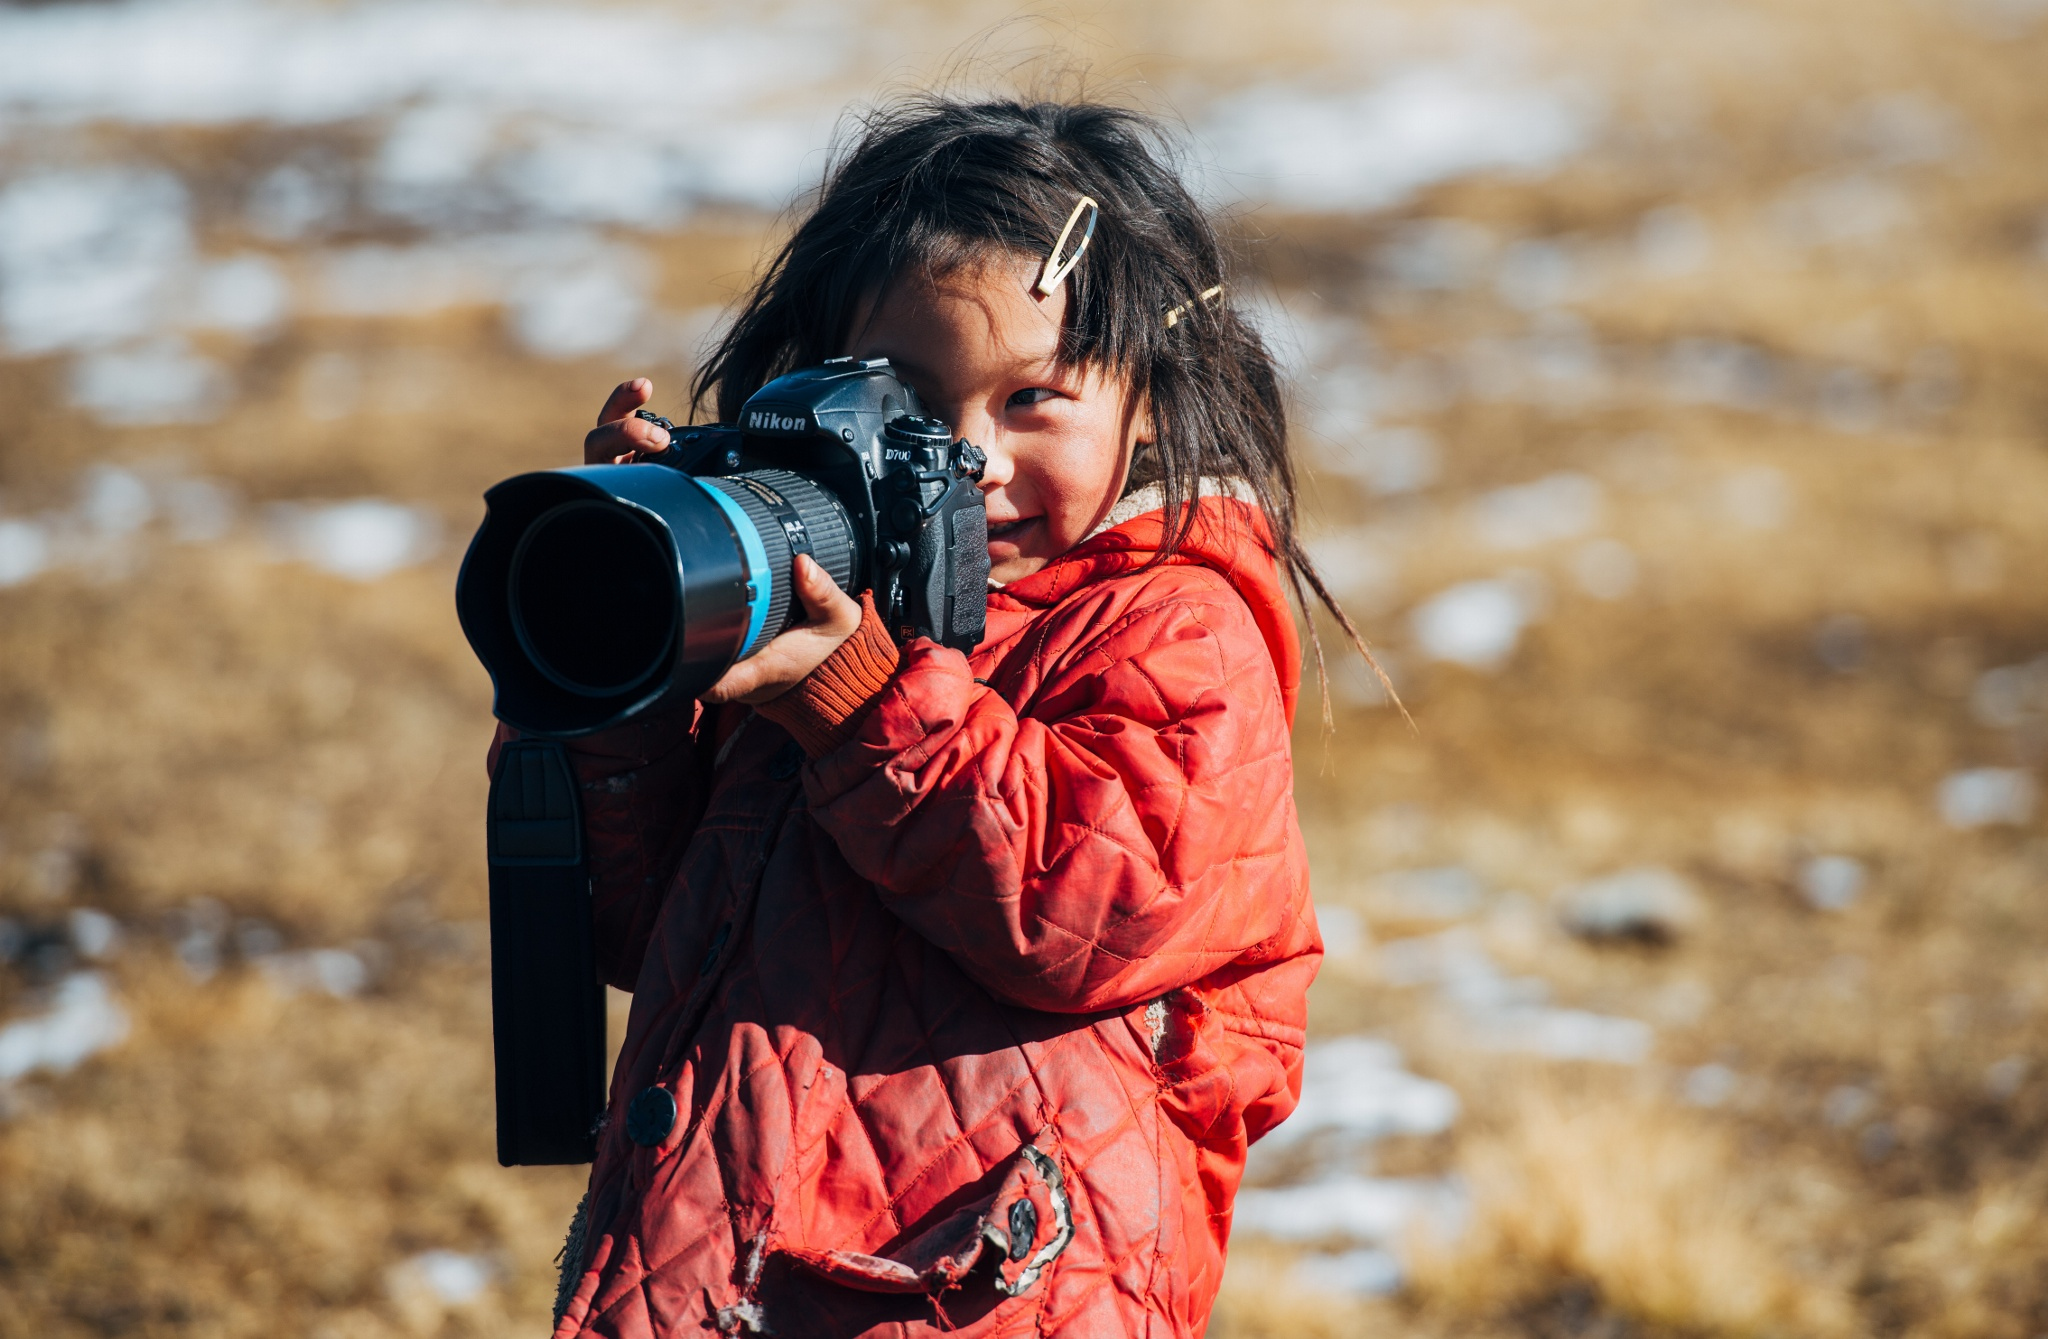 35 Adorable Photographers-In-Training That'll Melt Your Heart